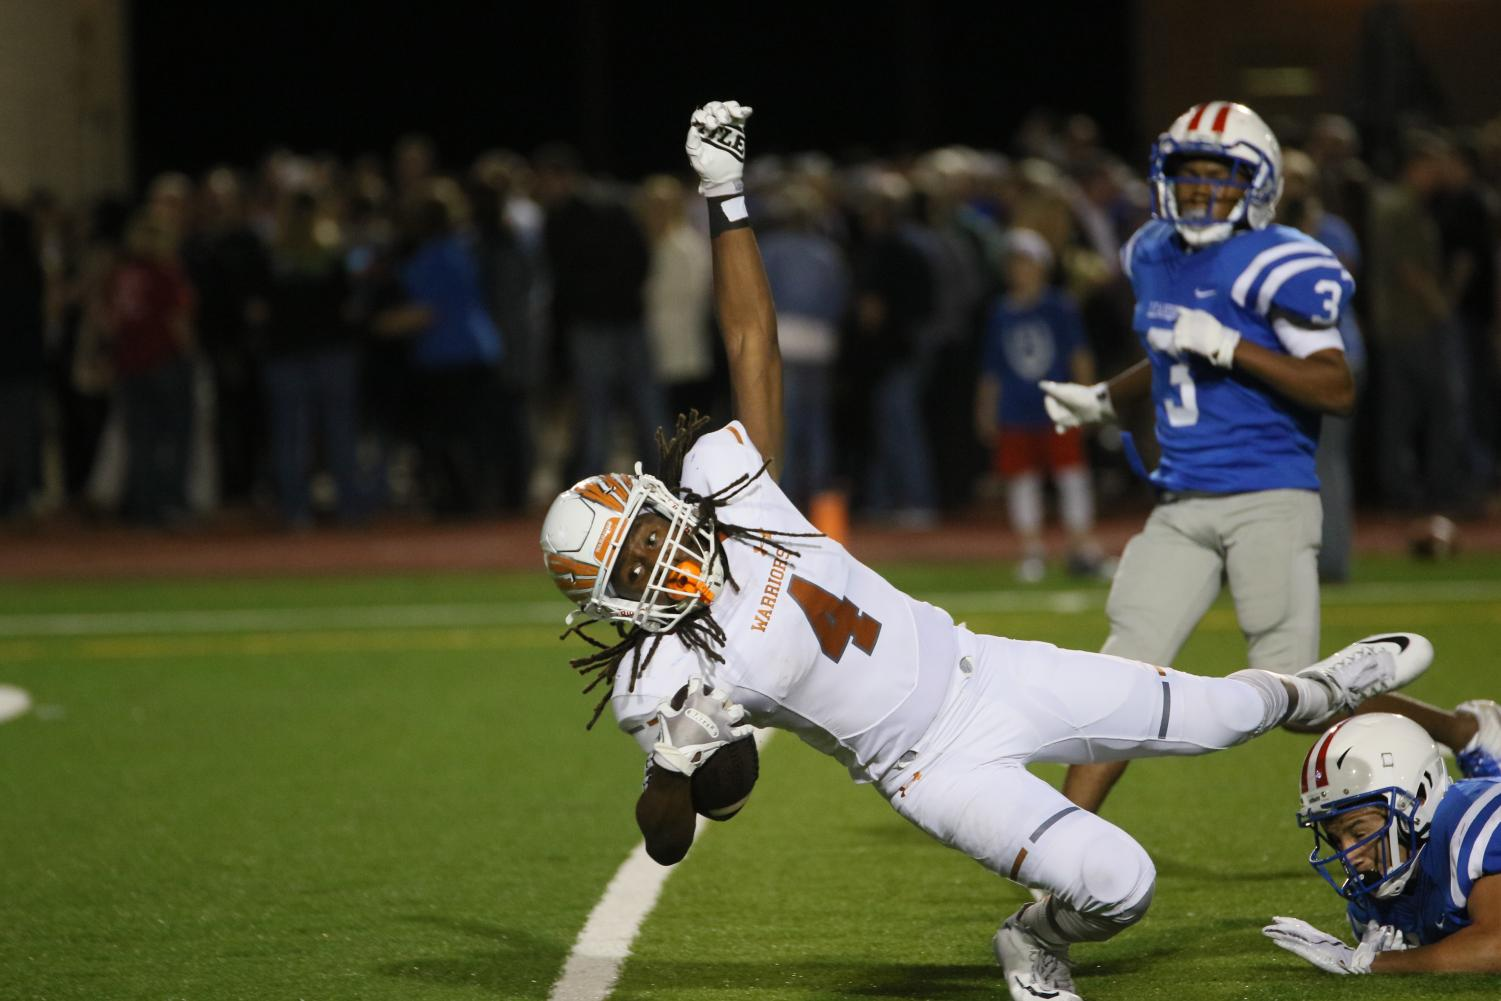 Clinging onto the ball, Nate Anderson '21 reaches for the end zone.